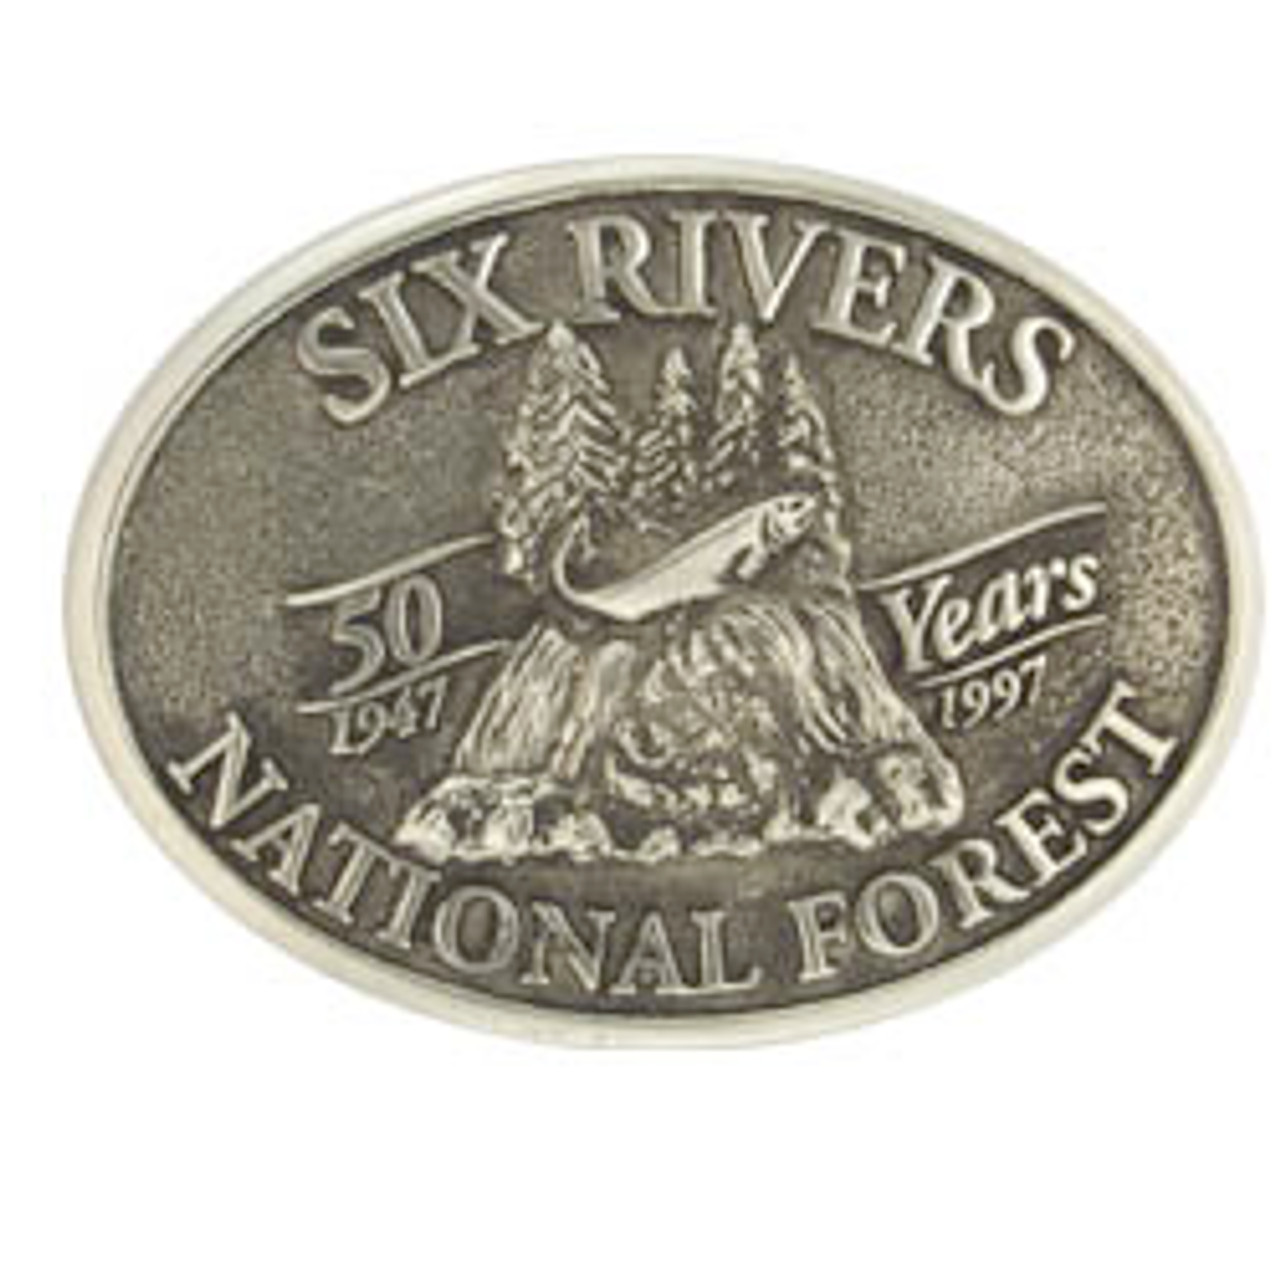 Six Rivers National Forest 50 Years Buckle